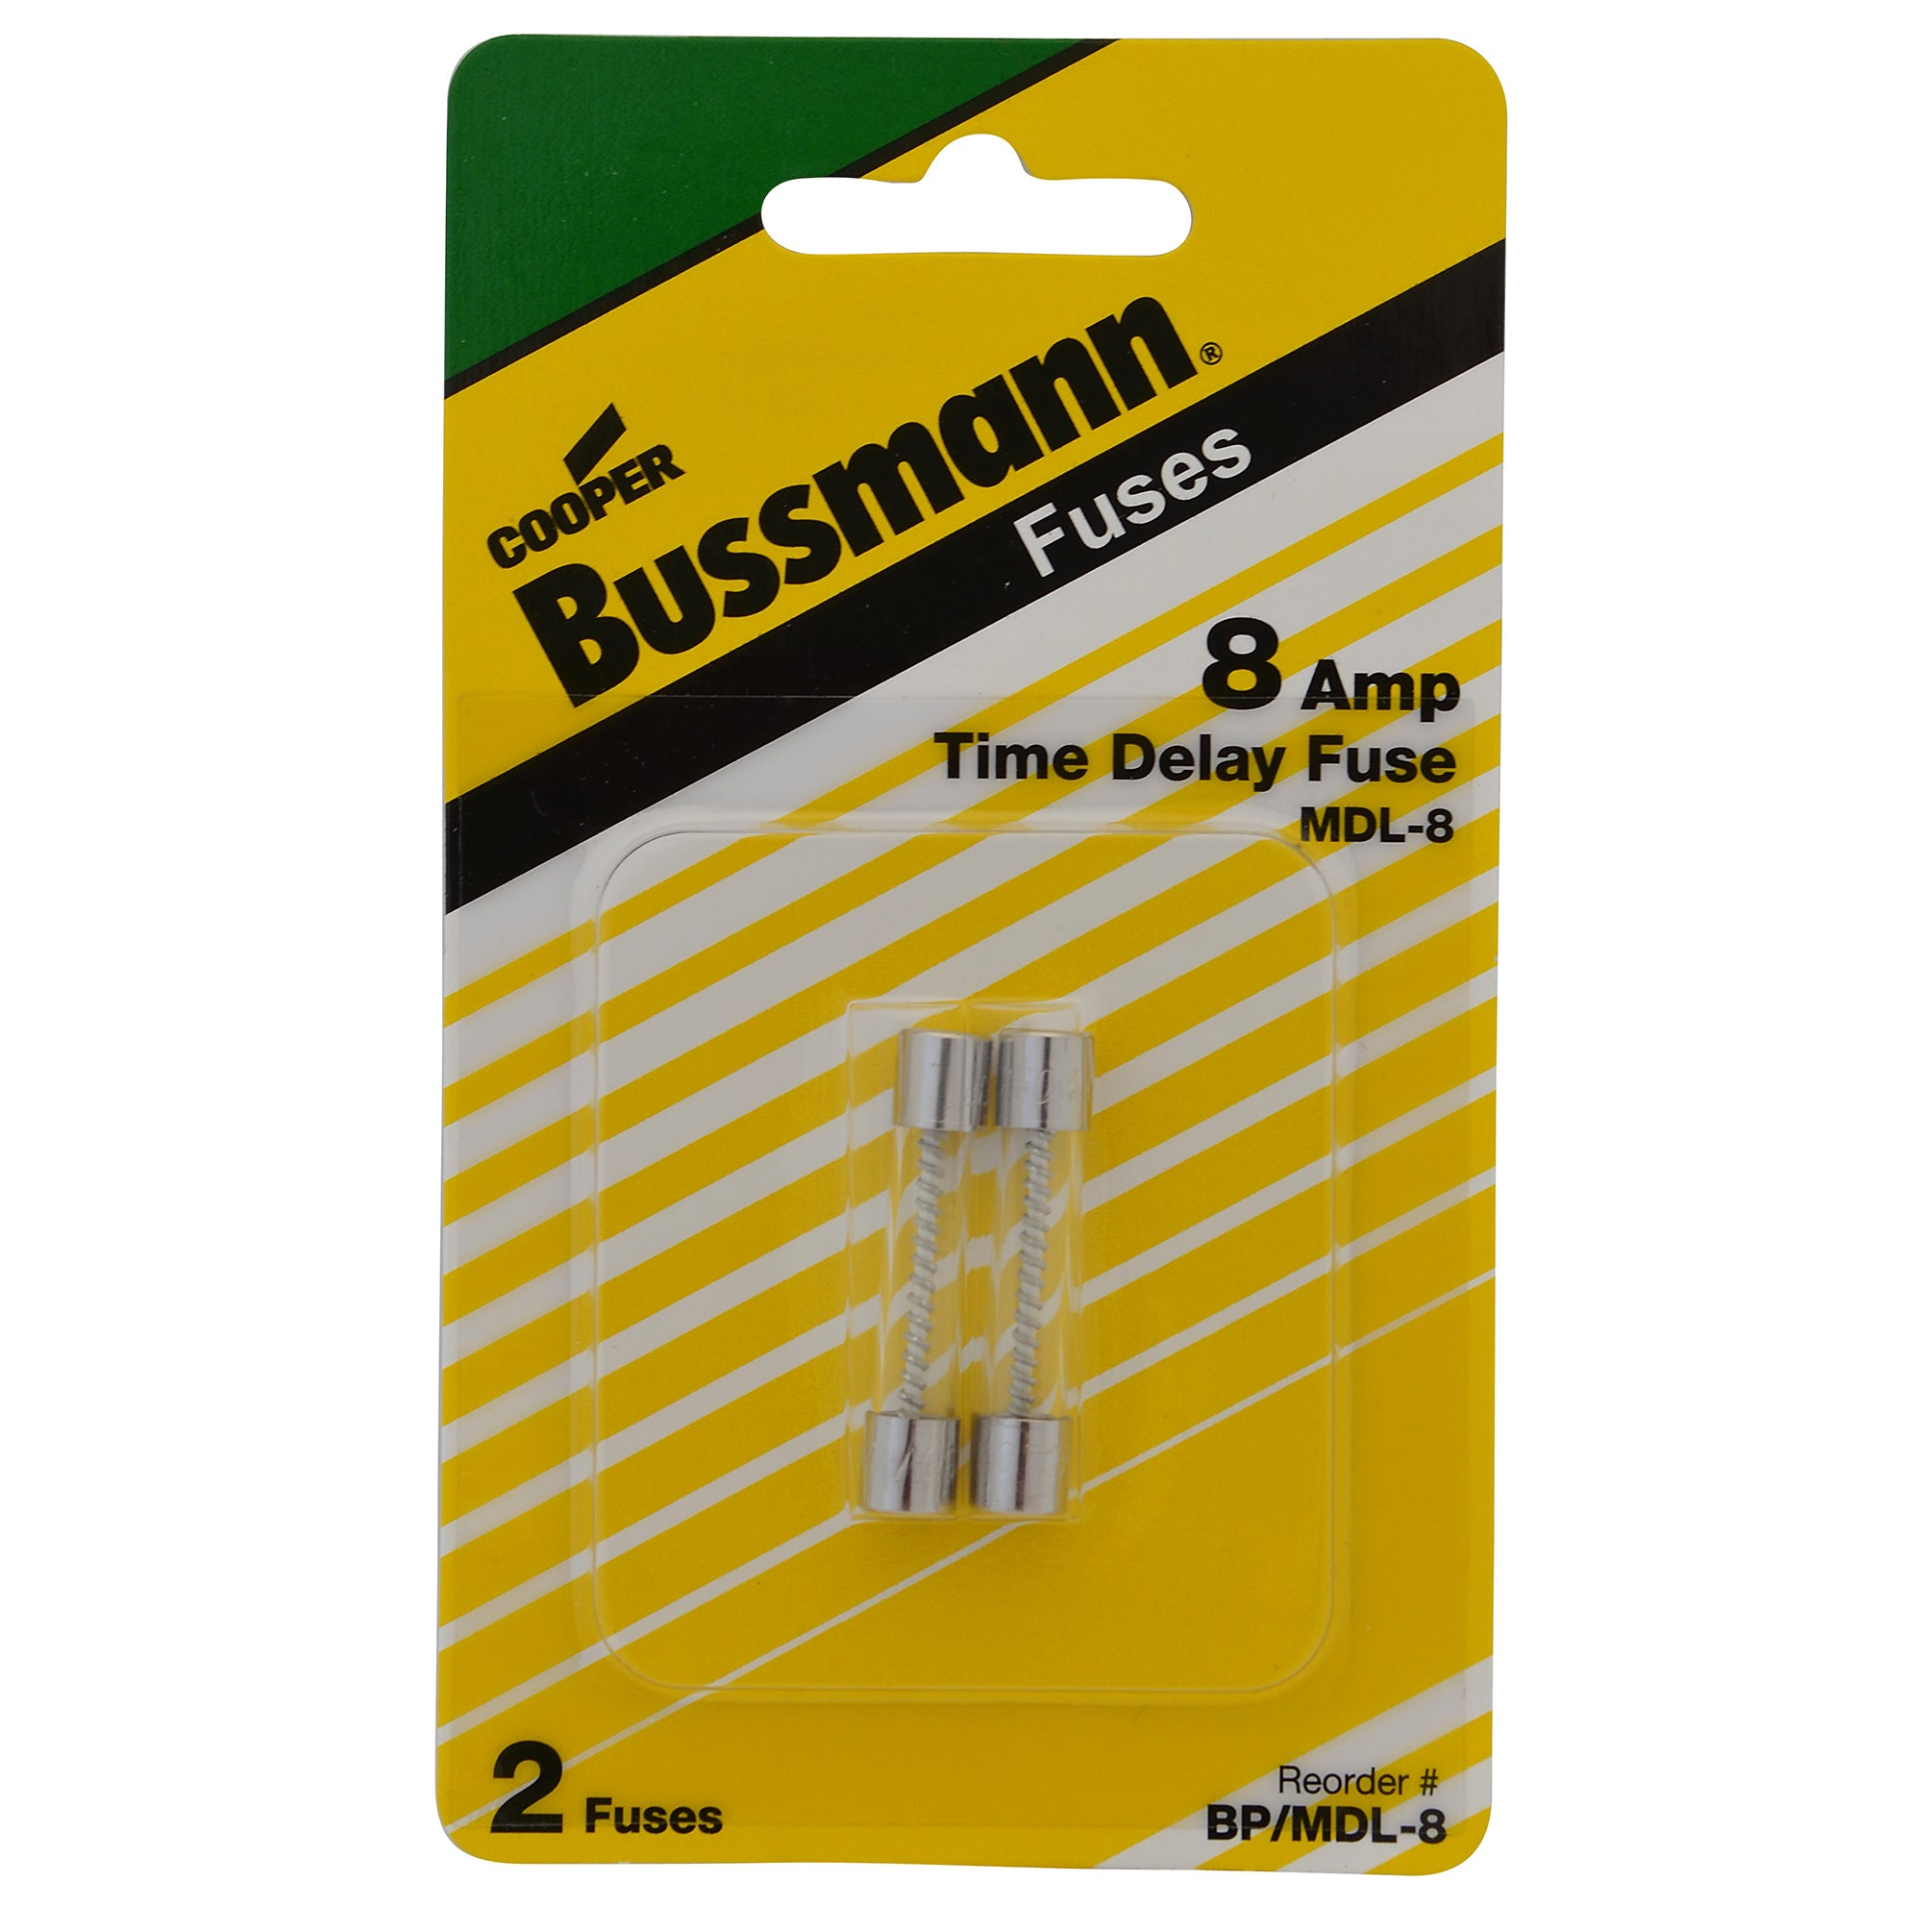 Bussmann n Time Delay Glass Fuse 8 amps 250 volts 1/4 in....